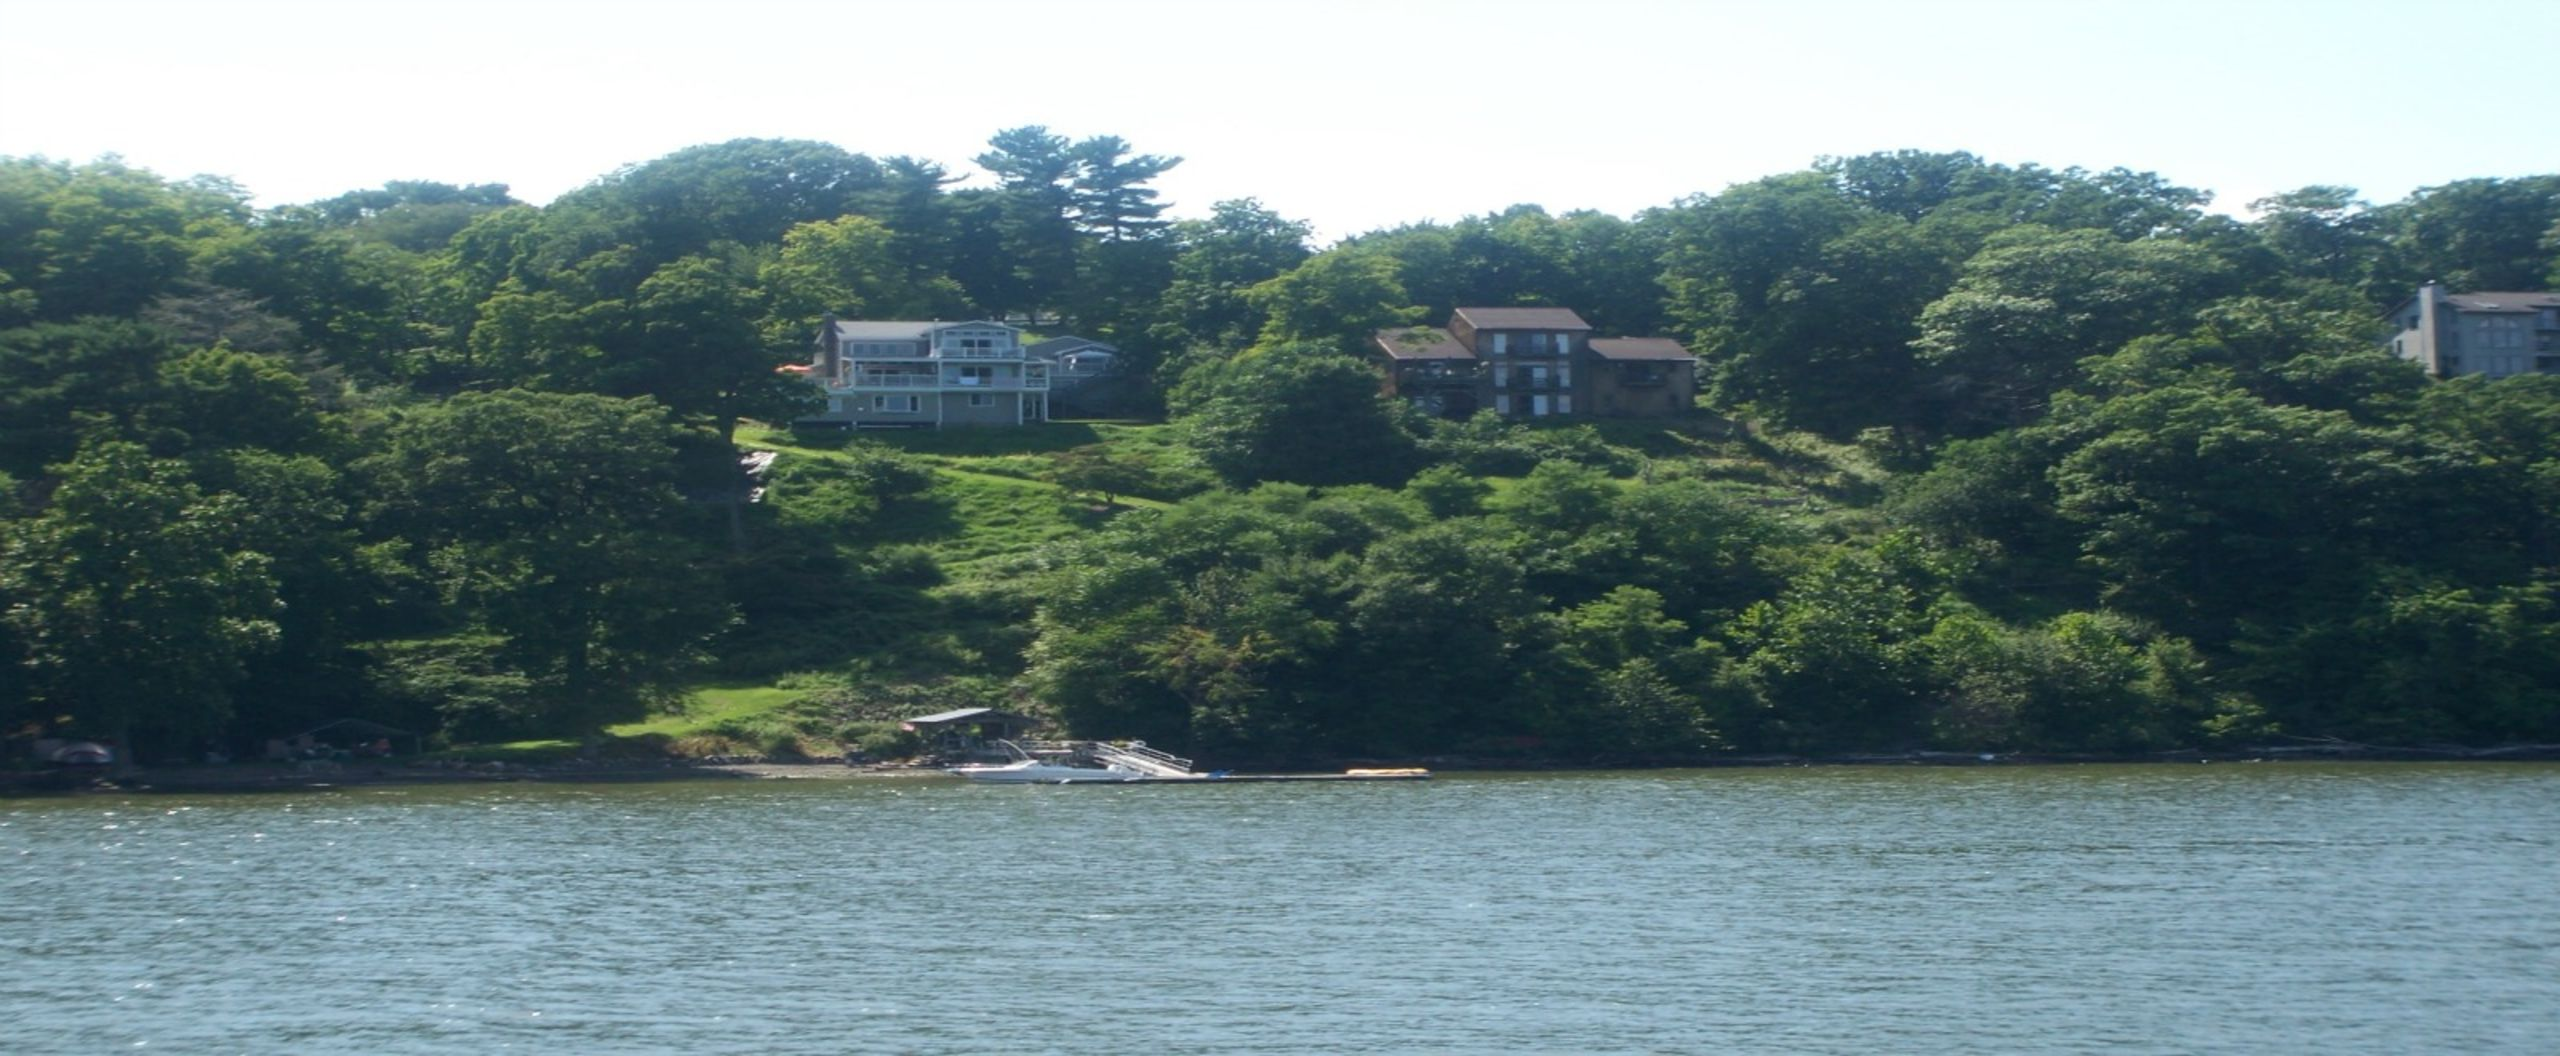 Homes  on the  bank of the Hudson River